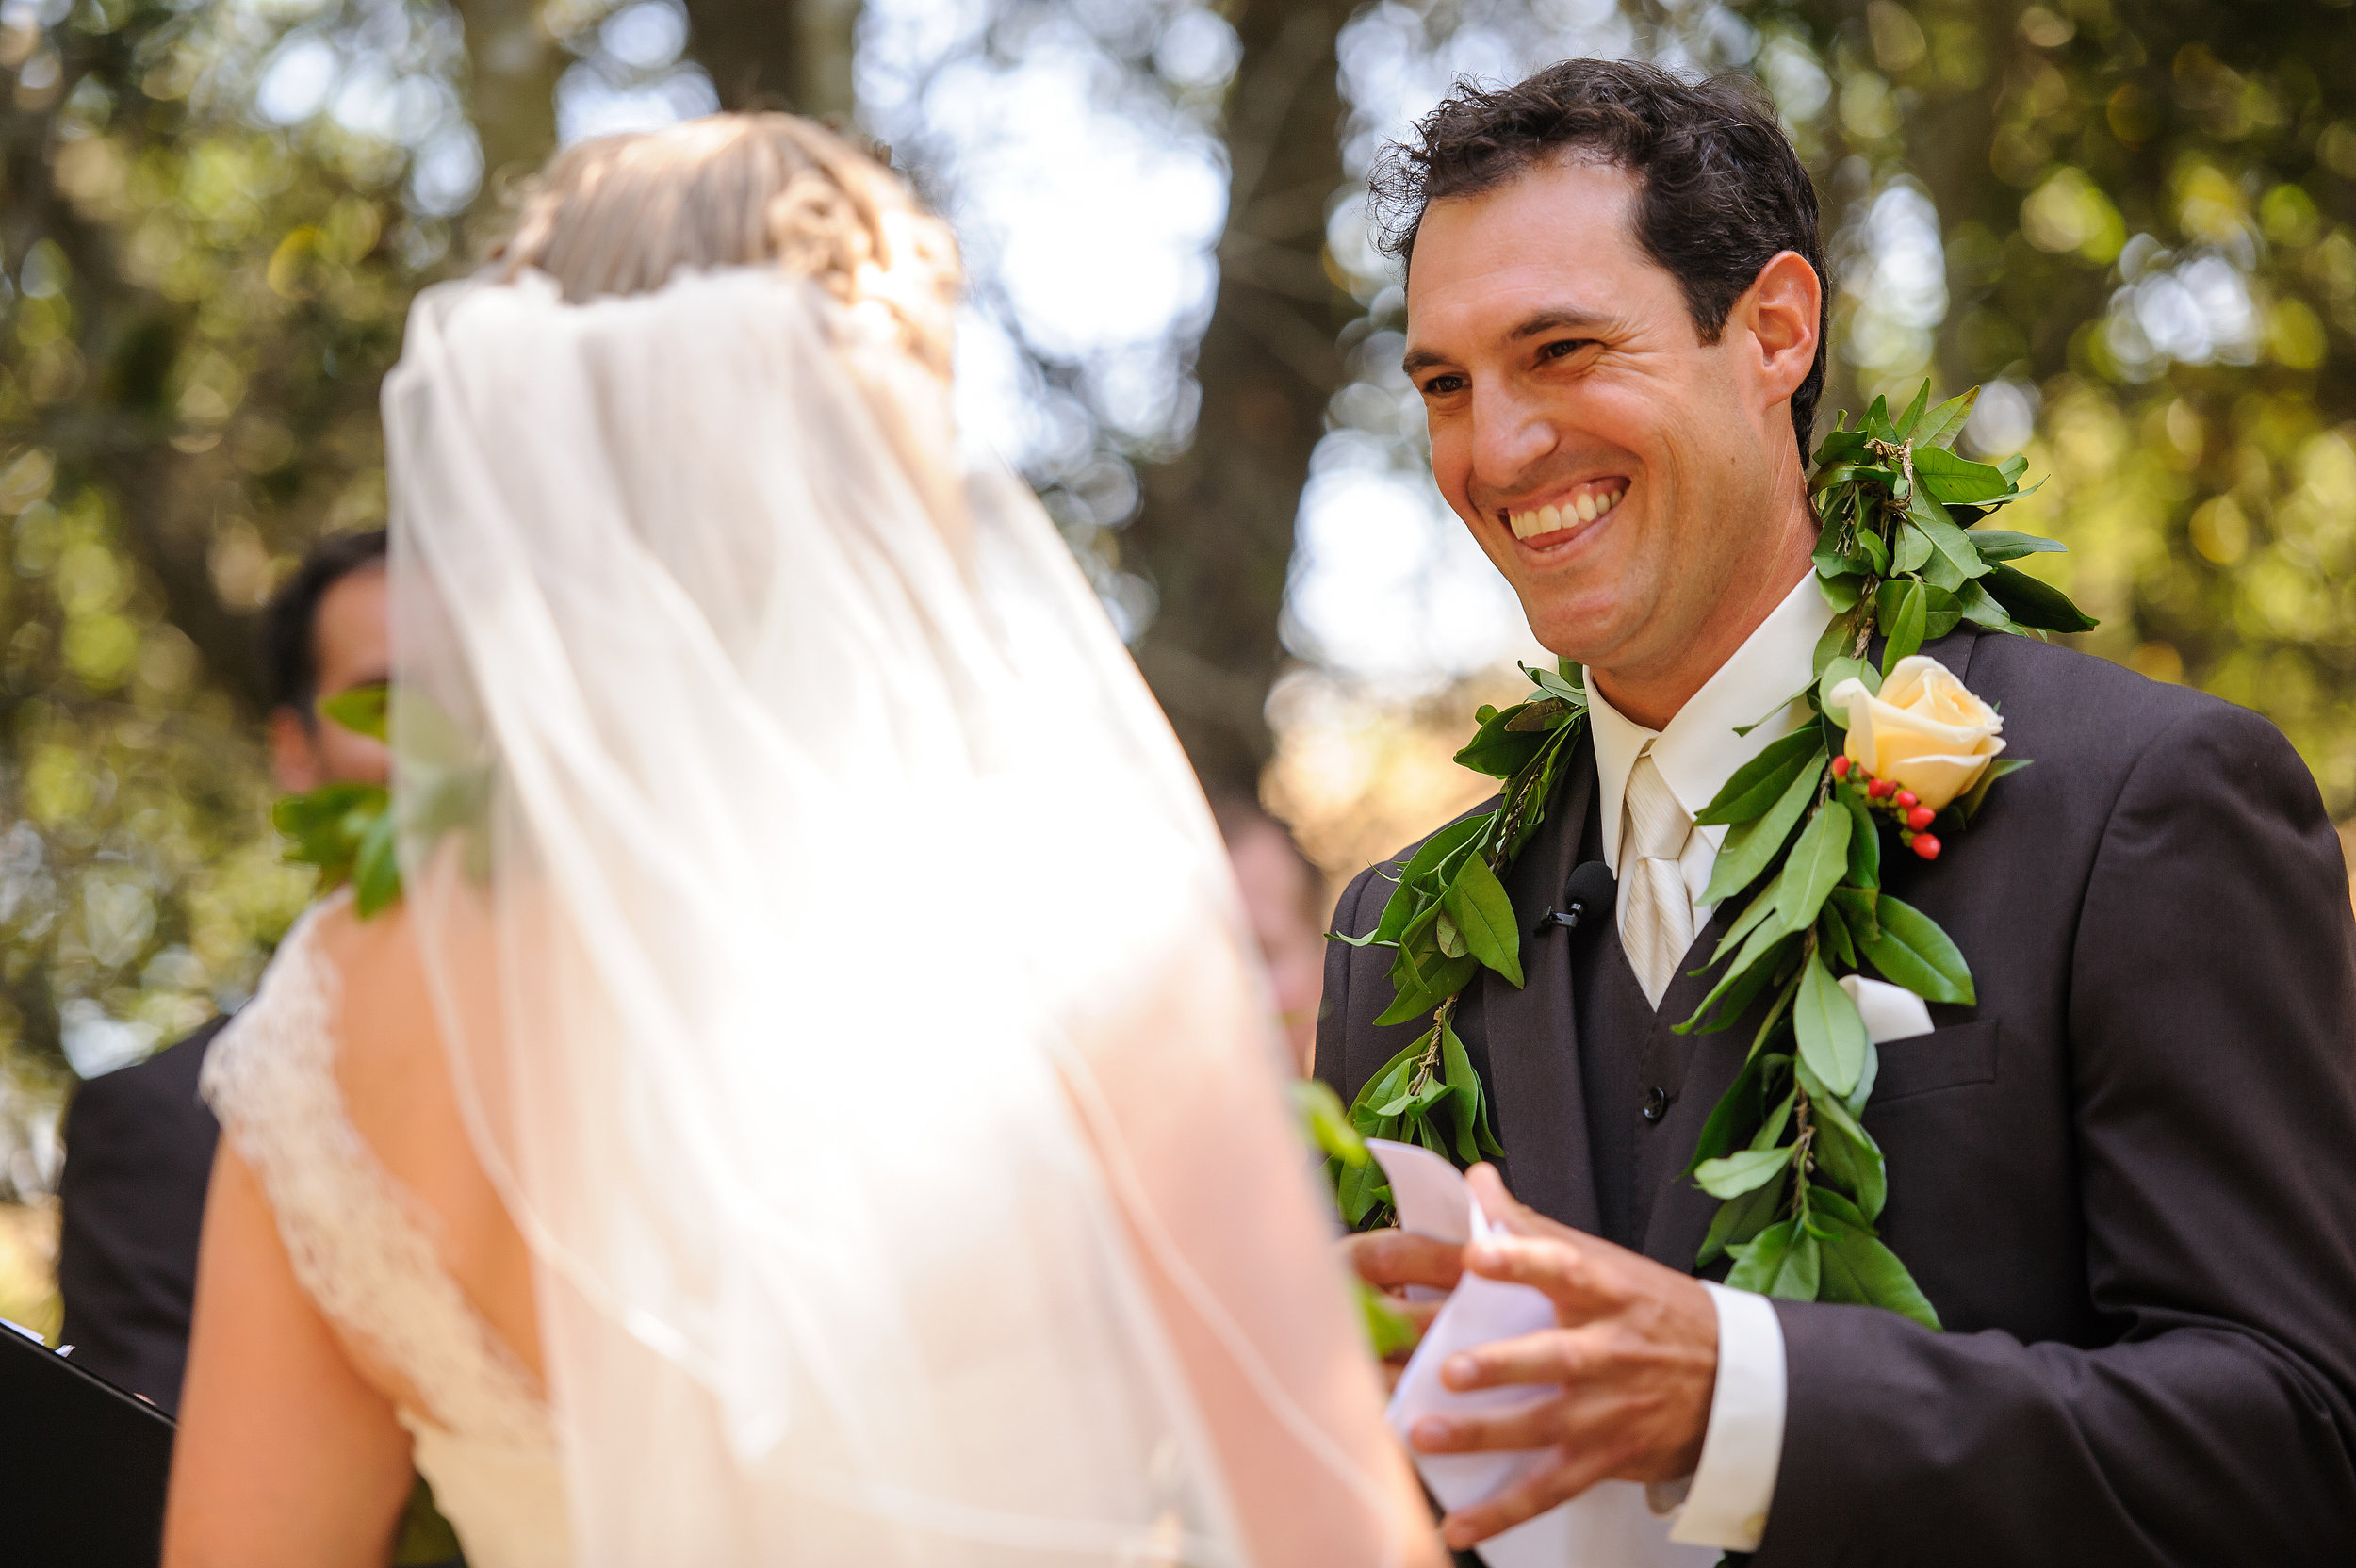 Groom's vows during wedding ceremony in Sonoma California.